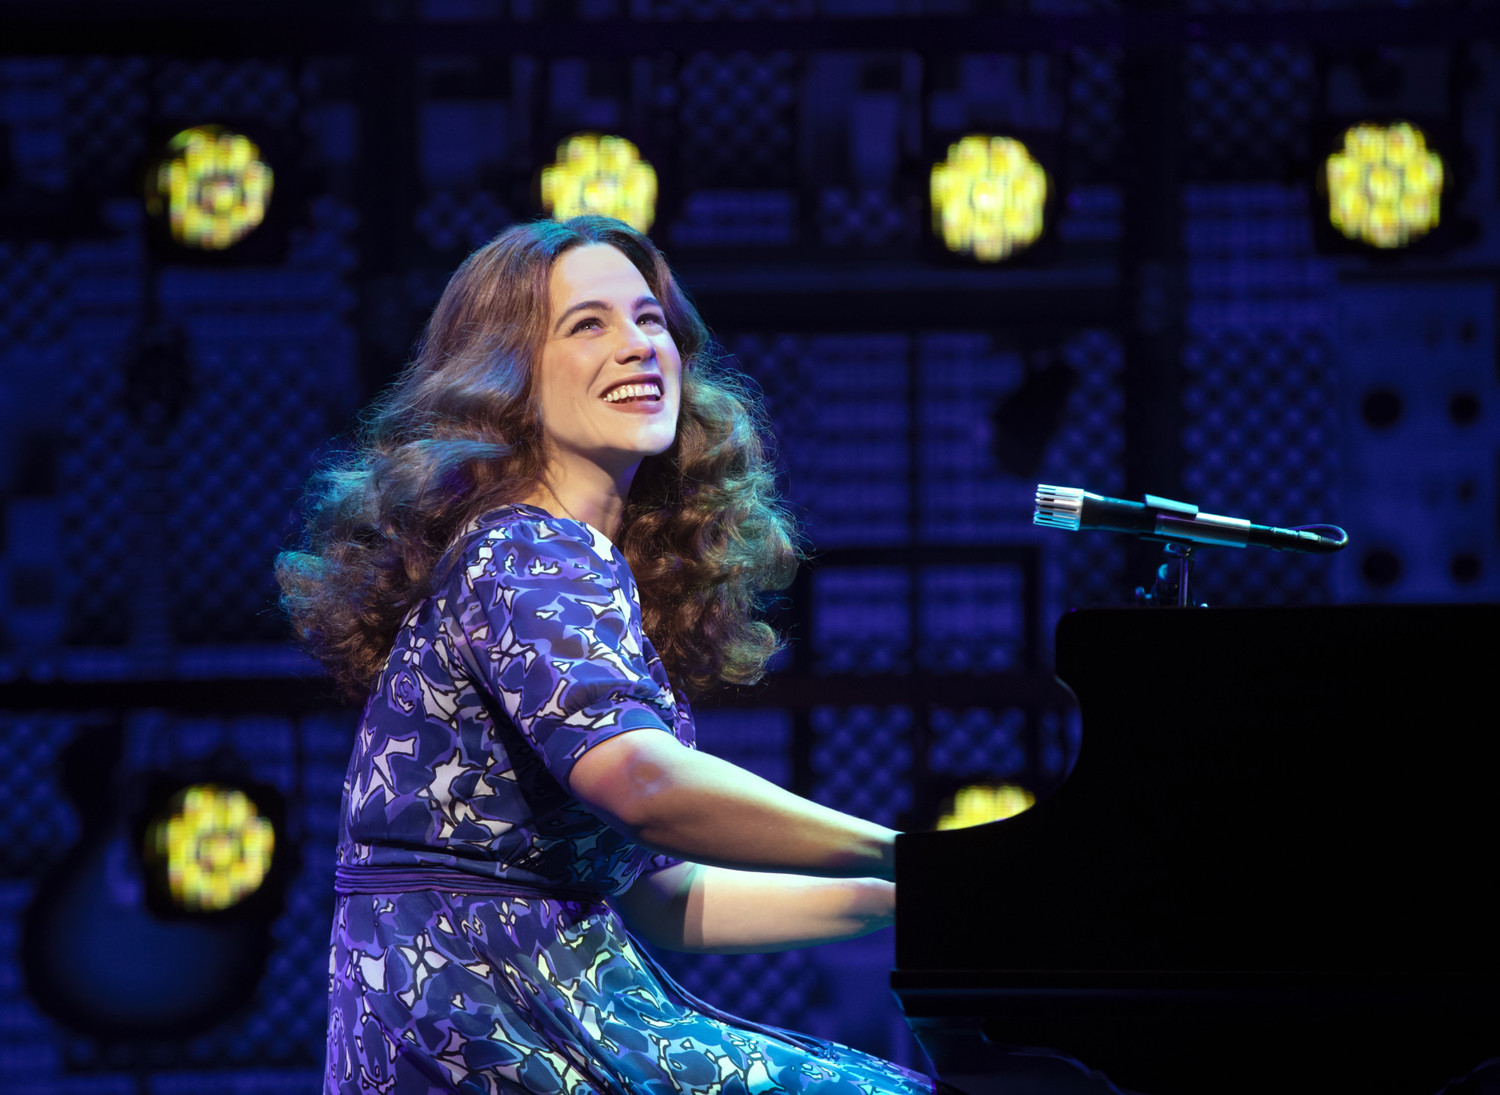 BWW Review: BEAUTIFUL: THE CAROLE KING MUSICAL Brings Iconic Songs and An Inspirational Story To Vancouver!